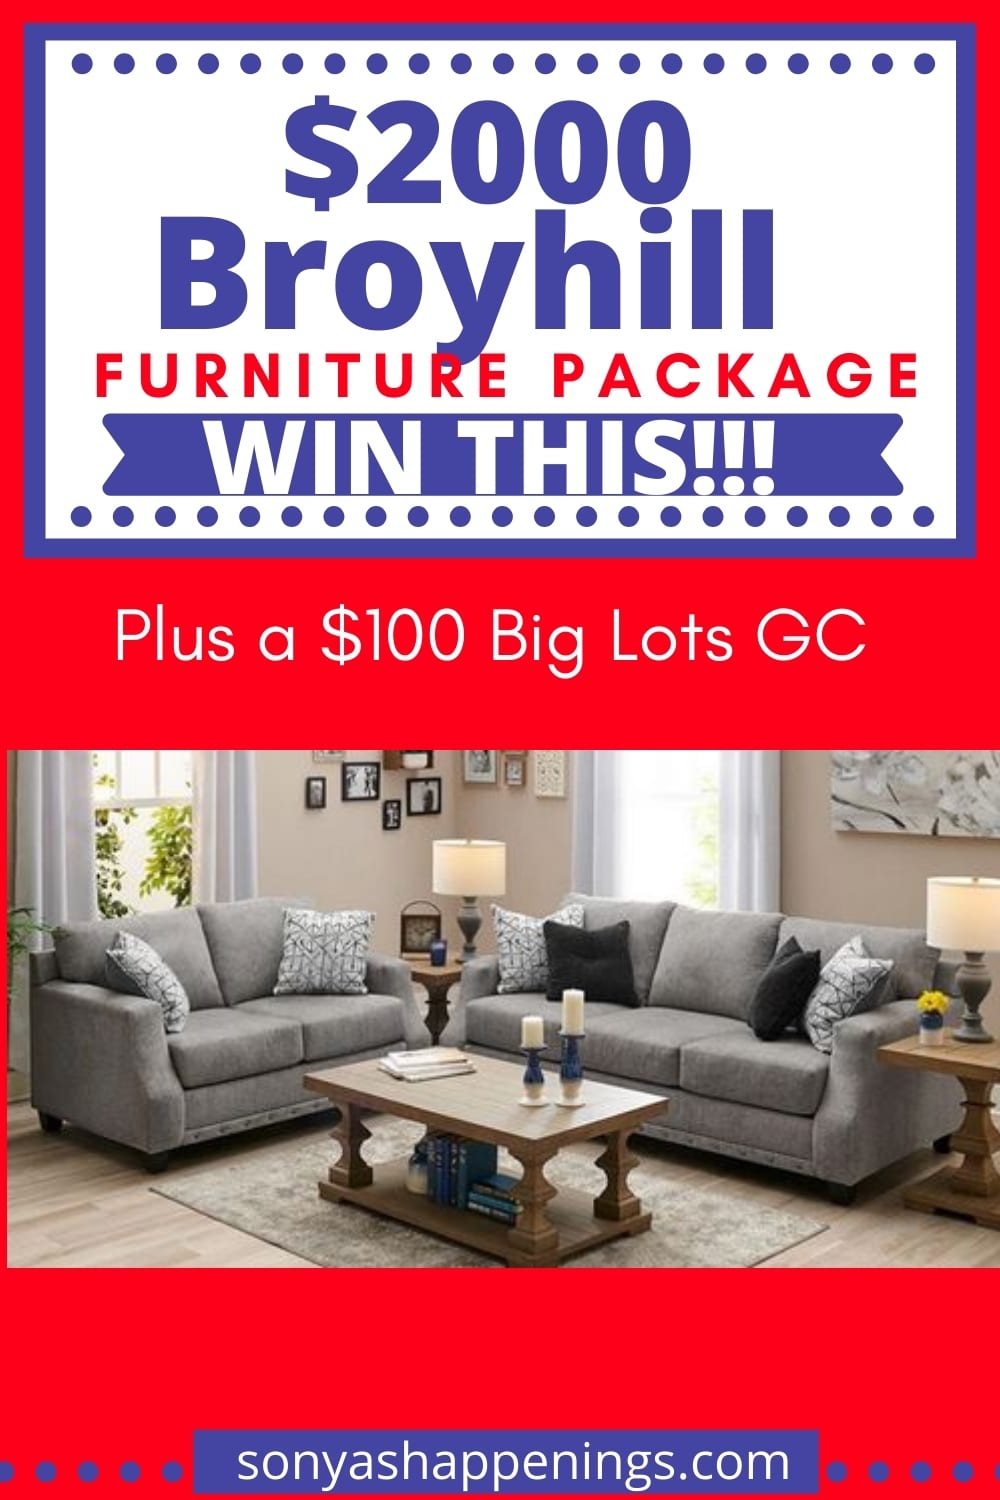 Win a $2000 Broyhill furniture package and $100 Big Lots GC ~ sweeps ends 9-30